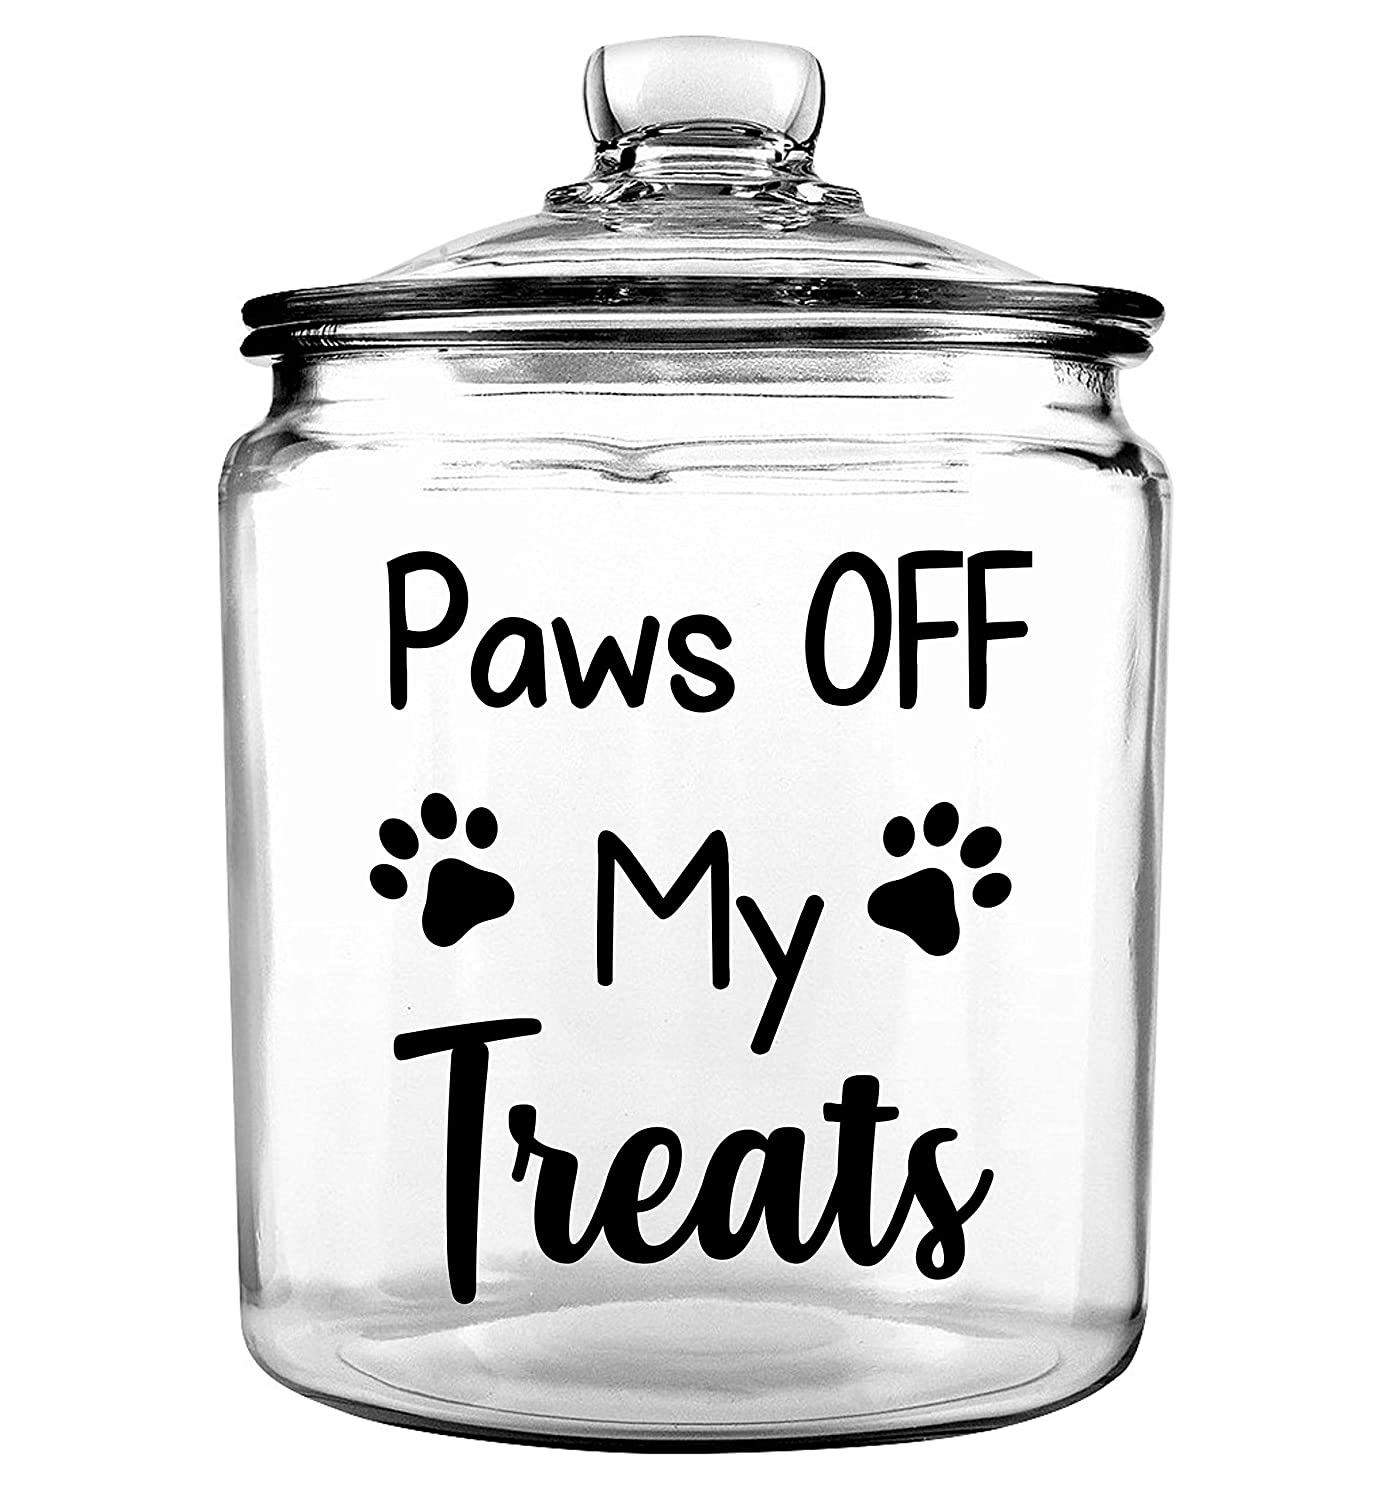 Personalized Pet Treat Jar - Dog Treat Jar - Custom Pet Treat Jar - Personalized Treat Jar - Dog Gift - Puppy Gift - Dog Bone Jar